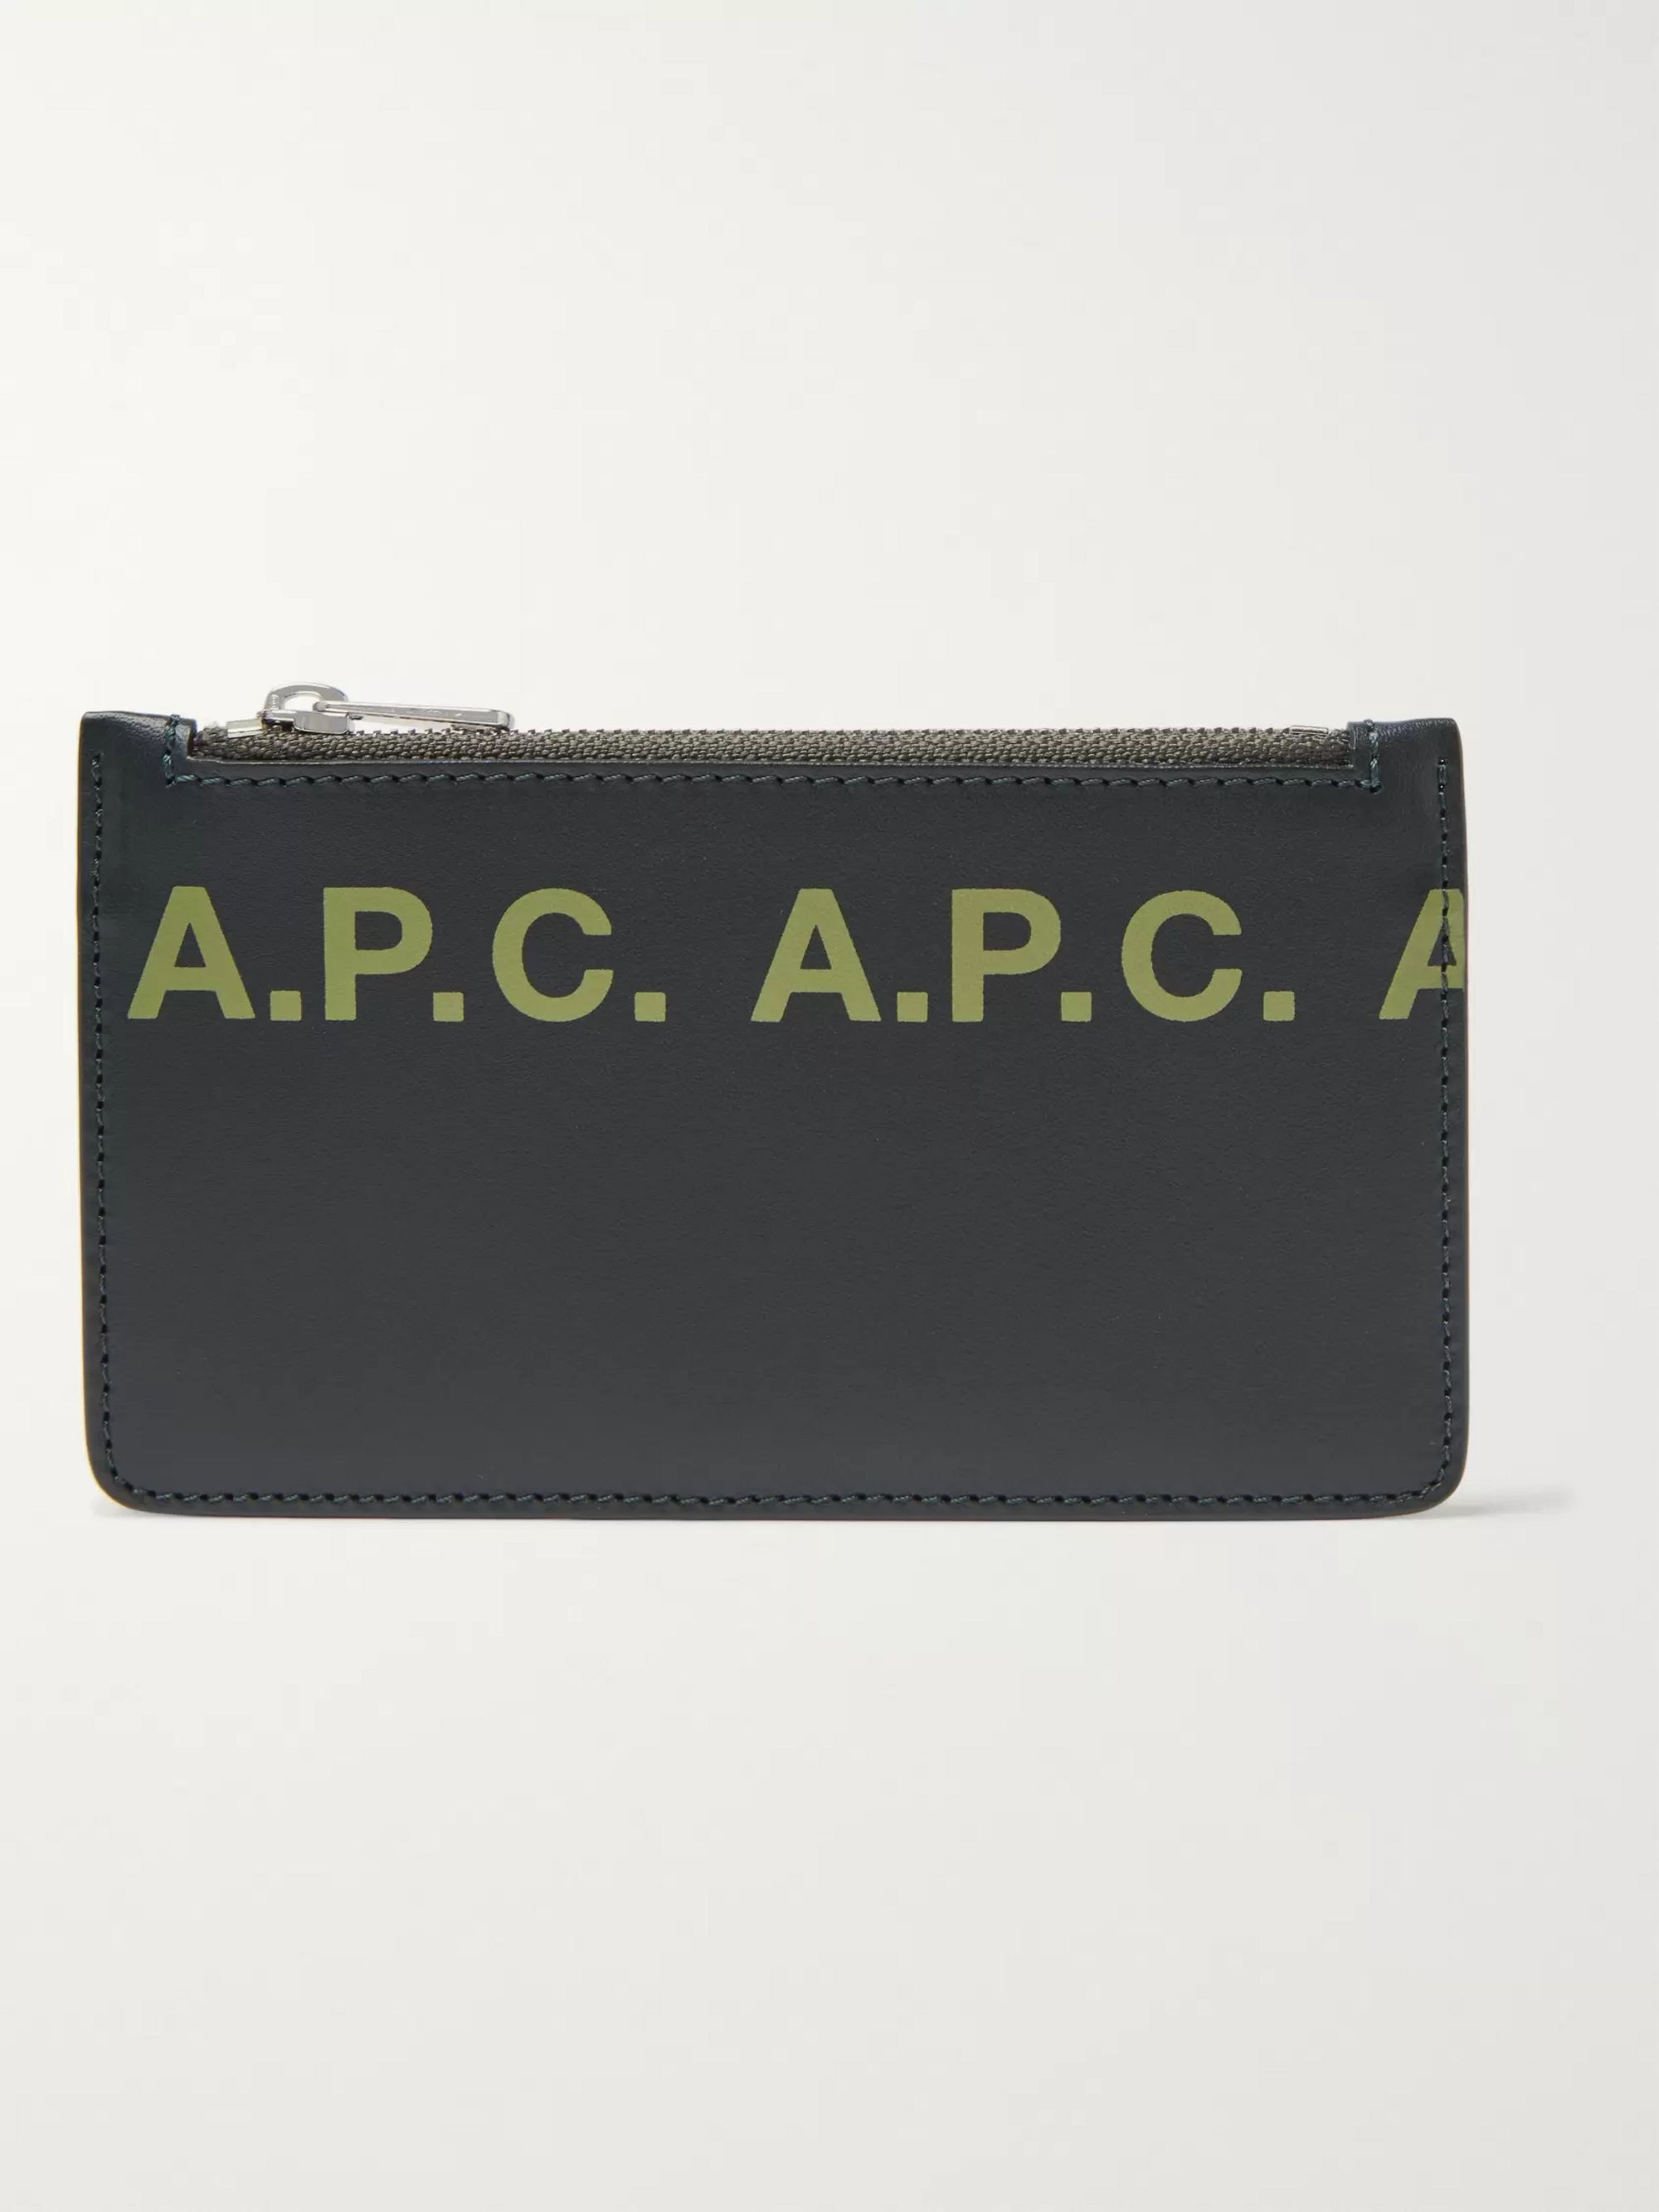 A.P.C. Logo-Print Leather Cardholder